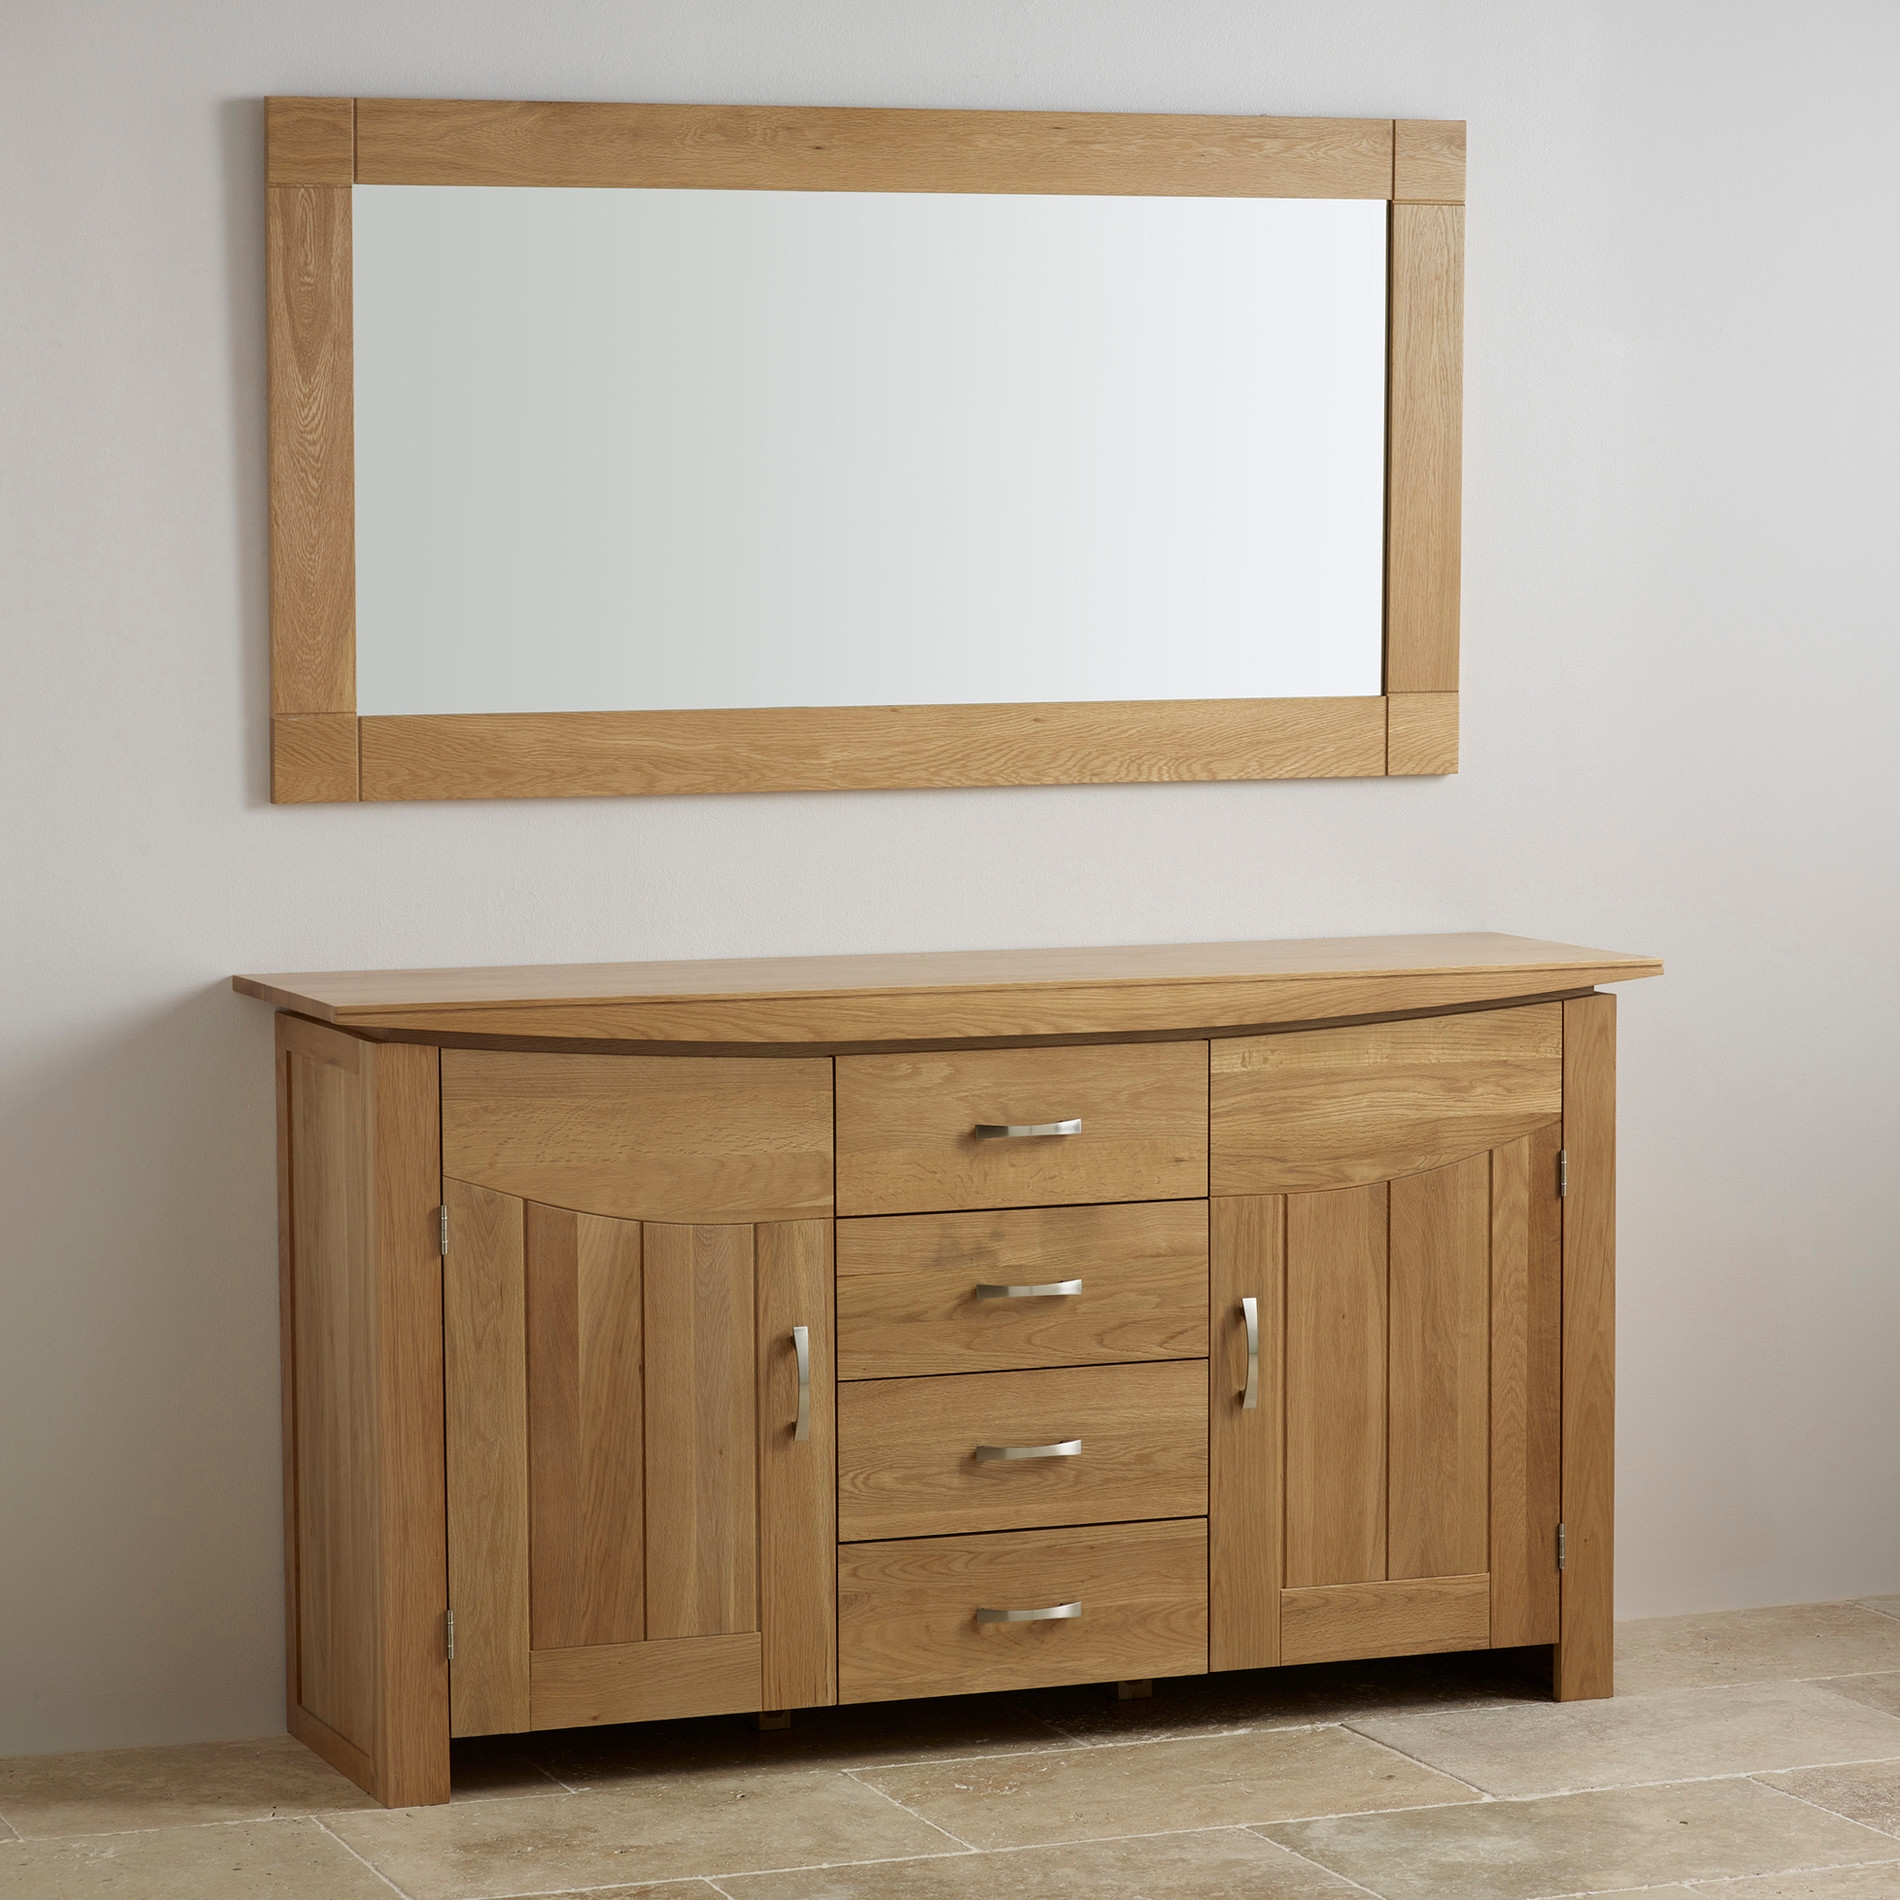 Full Length Table And Wall Mirrors Oak Furniture Land Pertaining To Oak Mirrors (Image 3 of 15)